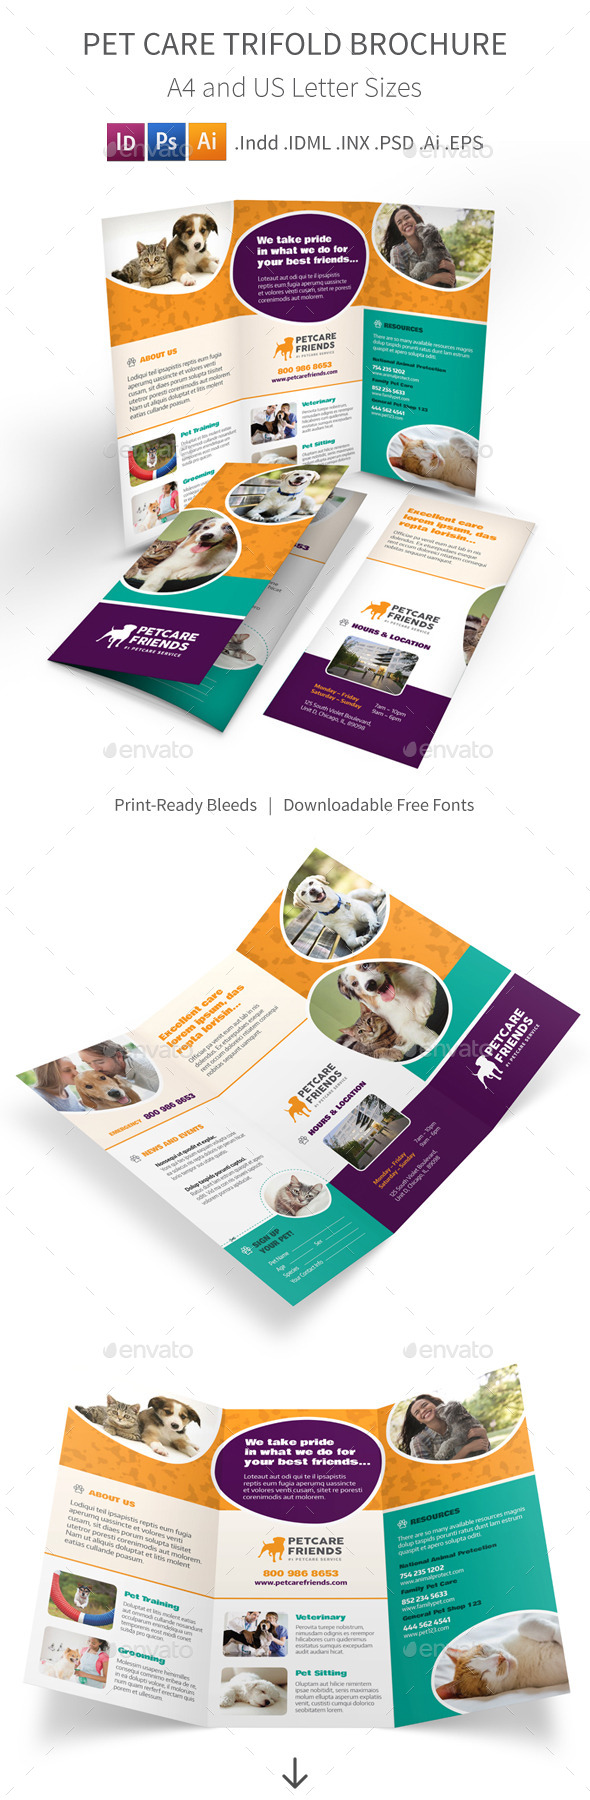 pet care trifold brochure by mike pantone graphicriver